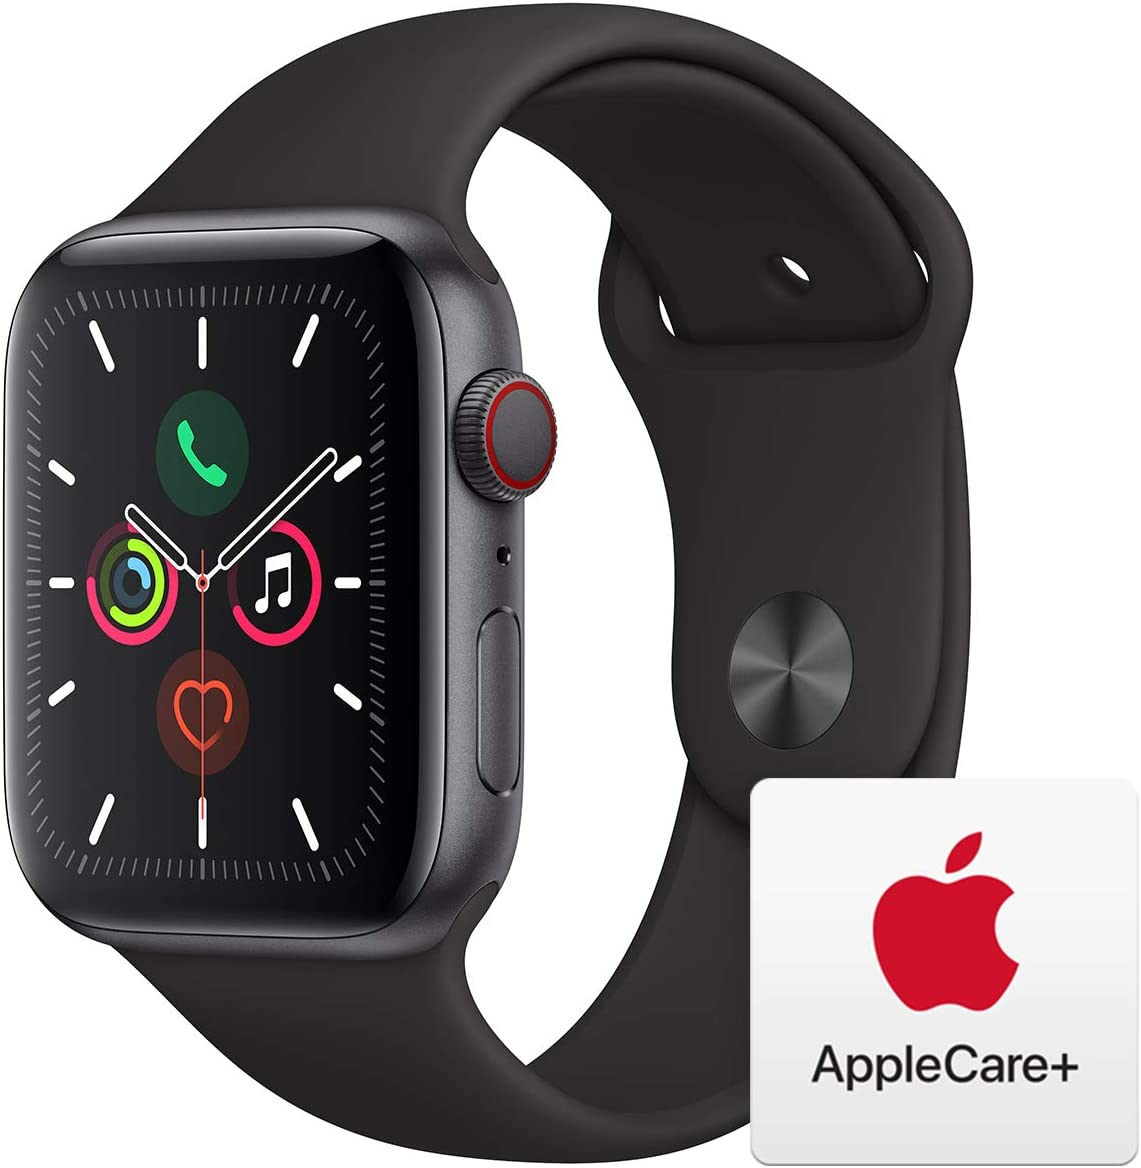 Apple Watch Series 5 (GPS+Cellular, 44mm) - Space Gray Aluminum Case with Black Sport Band with AppleCare+ Bundle